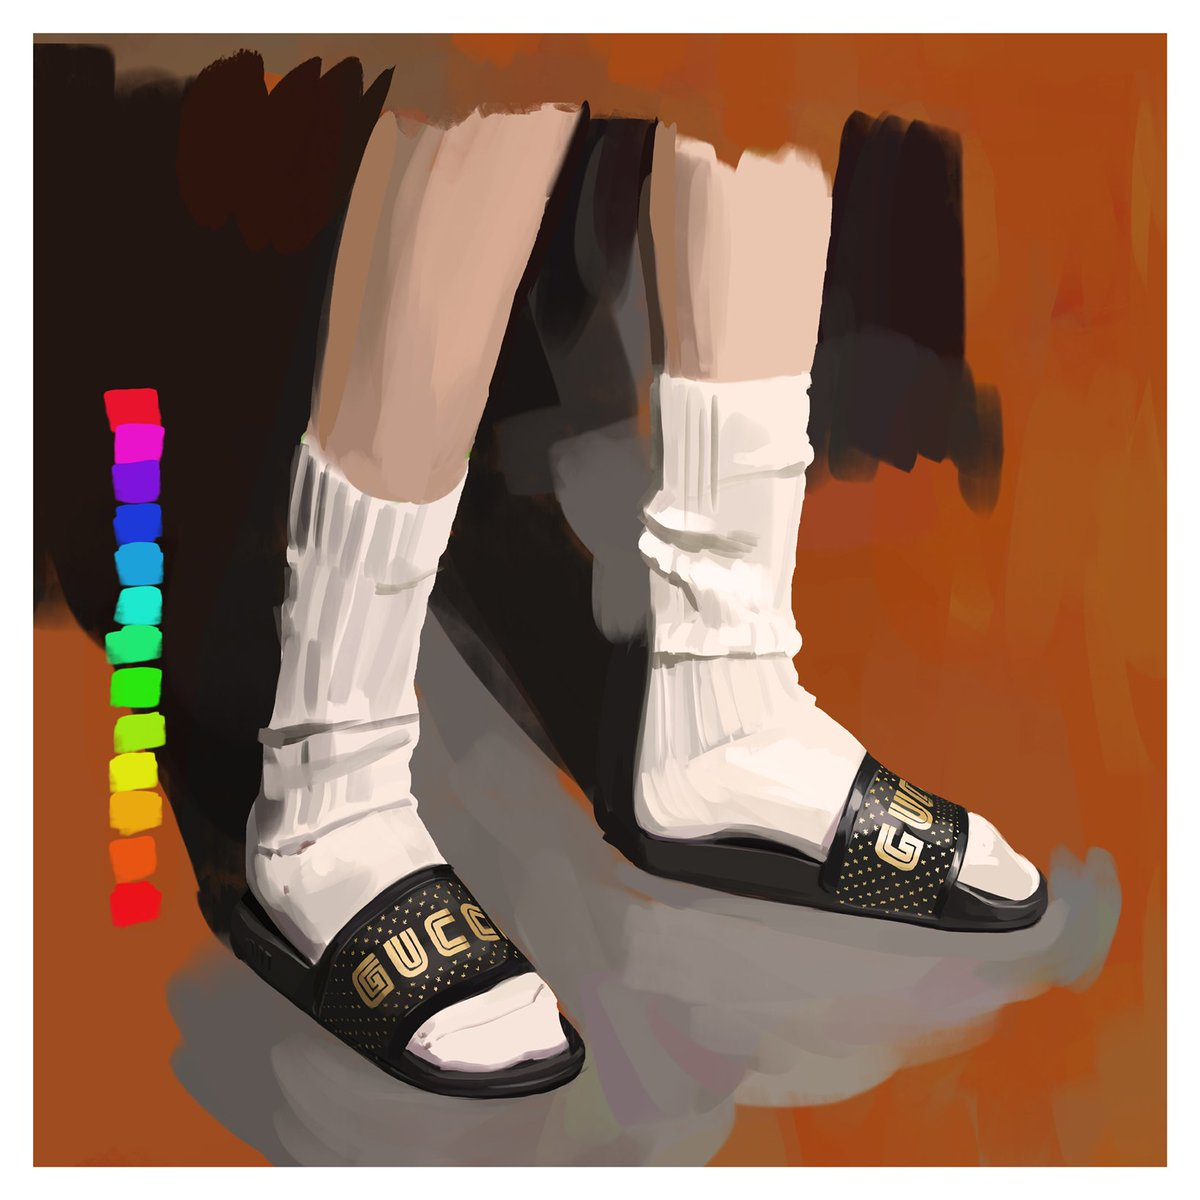 ede424e0b84 The new men s slide sandals from  GucciSS18 featuring the  Guccy print in   SEGA s logo font appear in an artwork by  IgnasiMonreal.